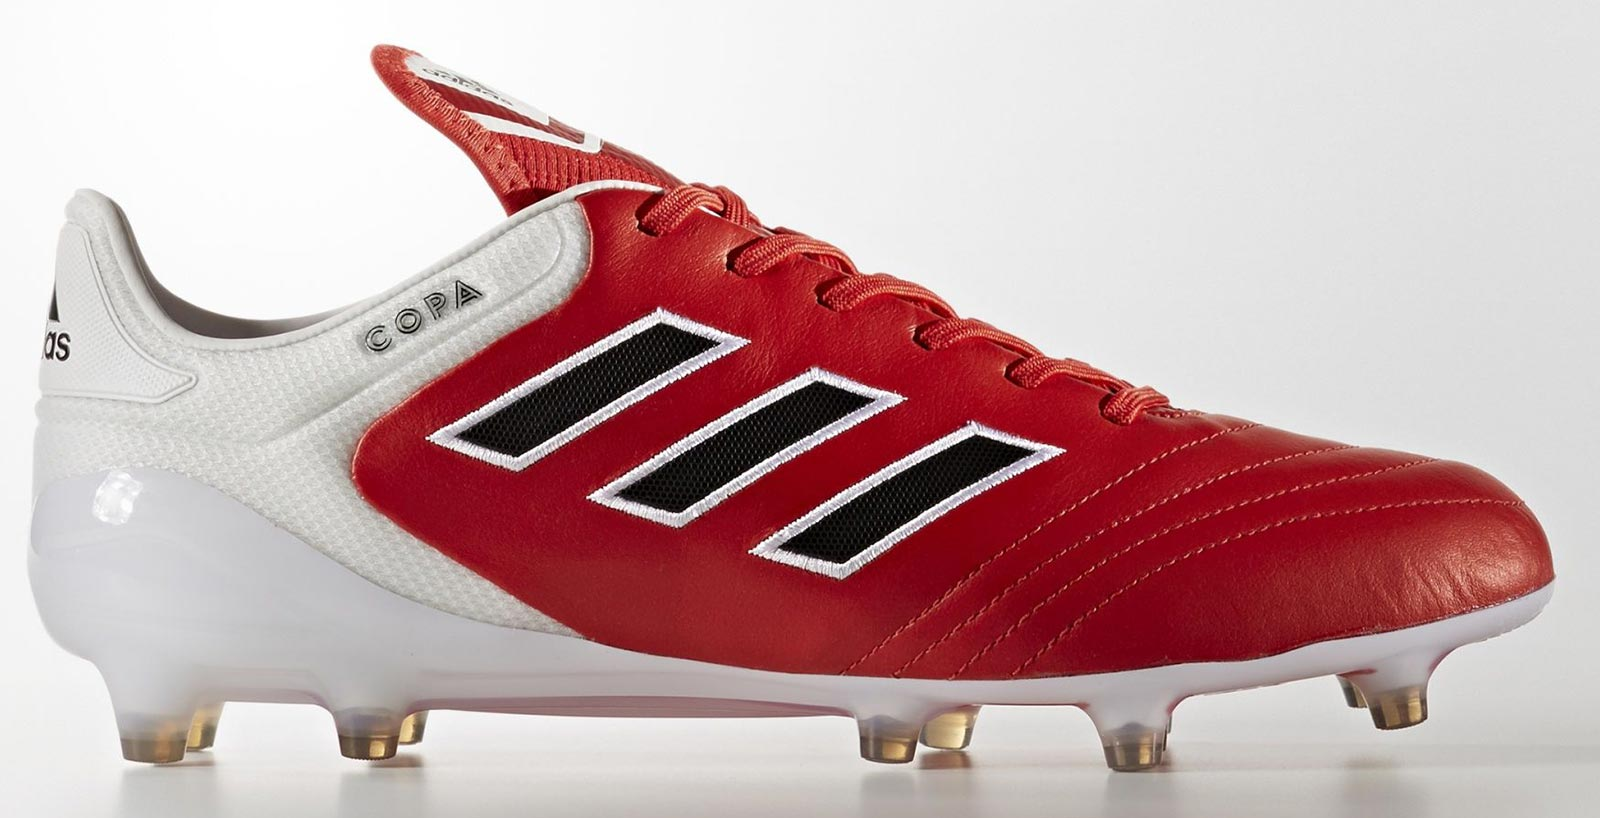 391d7c8c4f2 The Adidas Red Limit pack also introduces the first-ever Copa 17 football  boot.